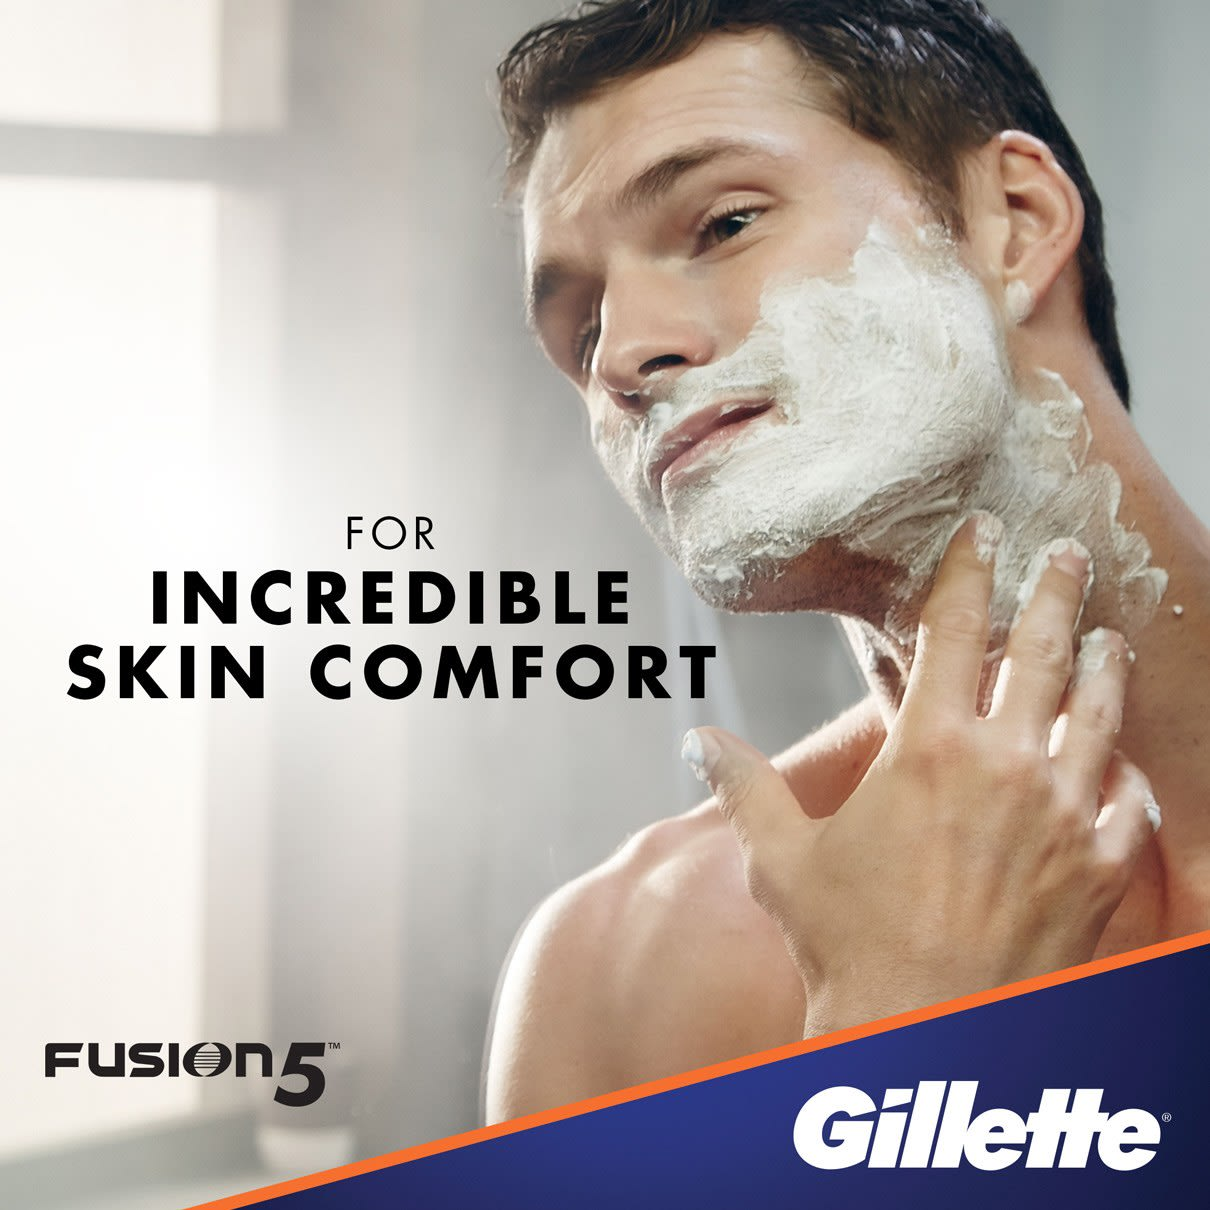 For Incredible Skin Comfort I  Gillette Fusion5 Ultra Sensitive Shave Foam